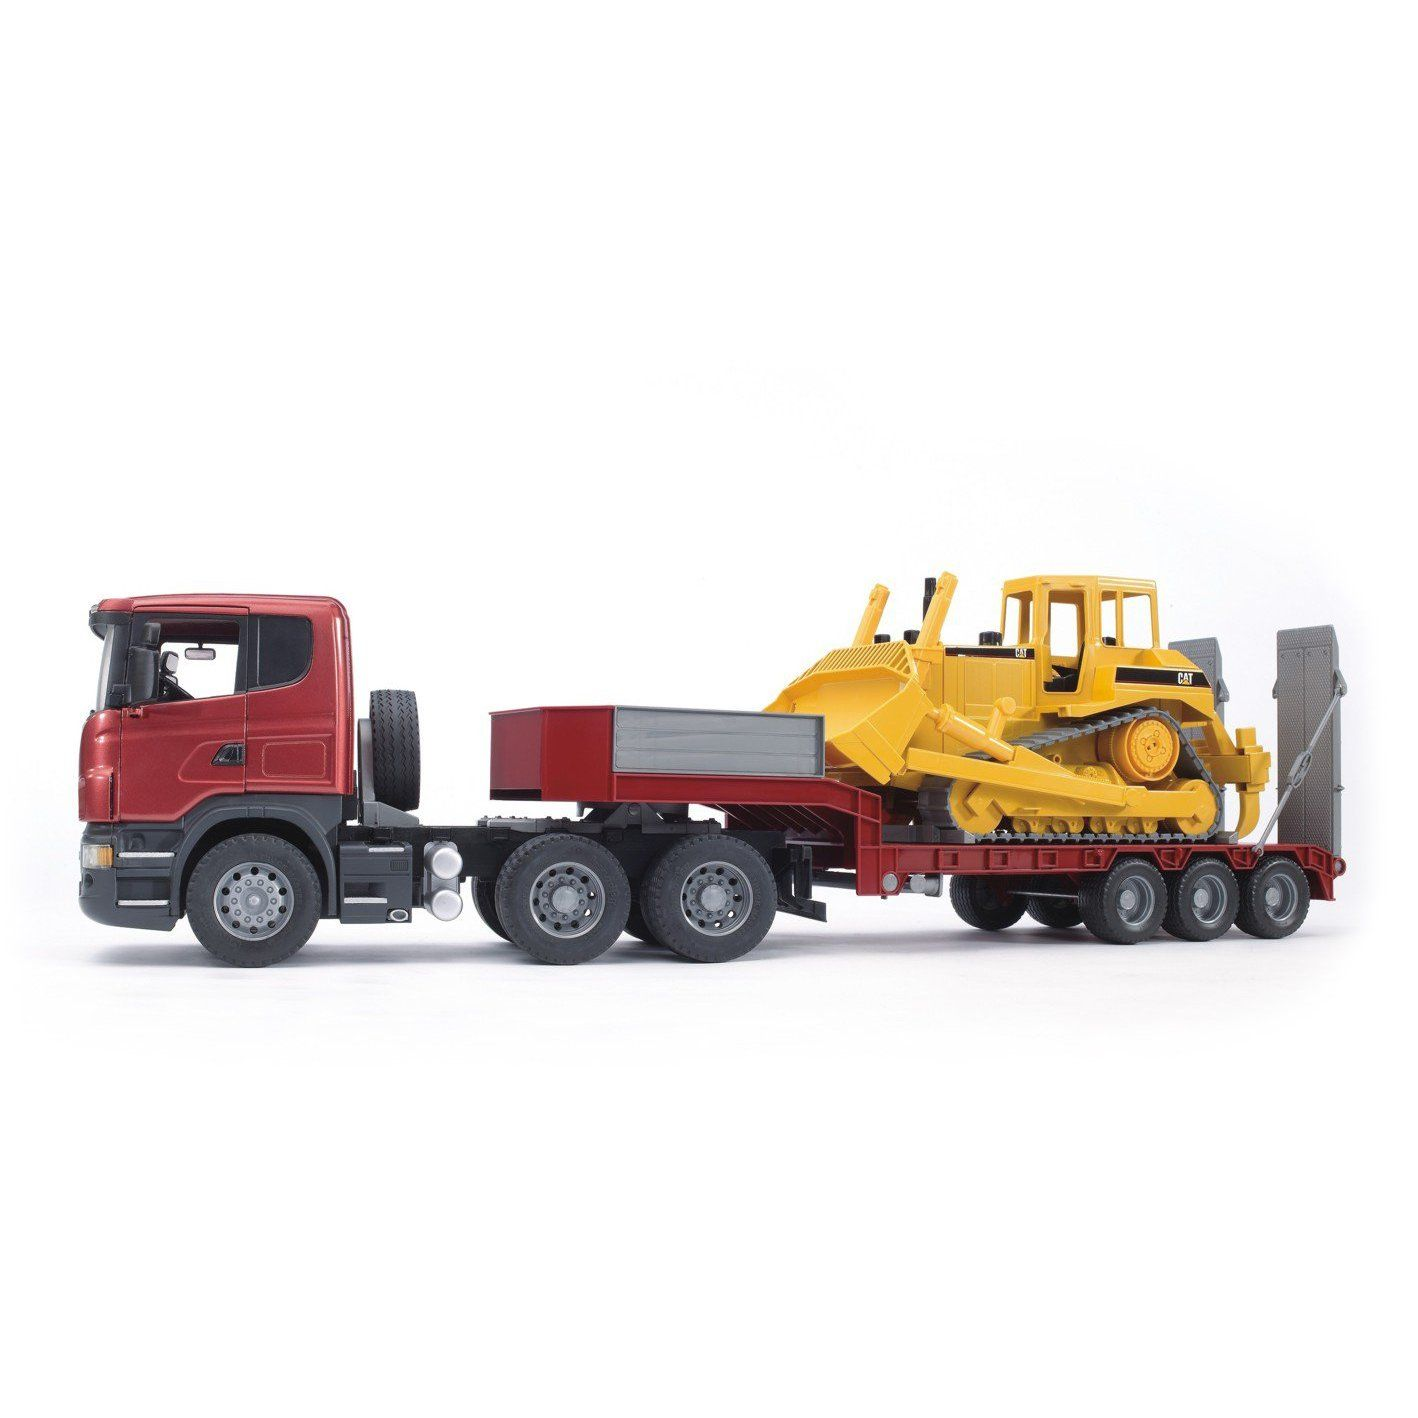 Scania Loader with Dozer - Vehicle Toys by Bruder Trucks ...